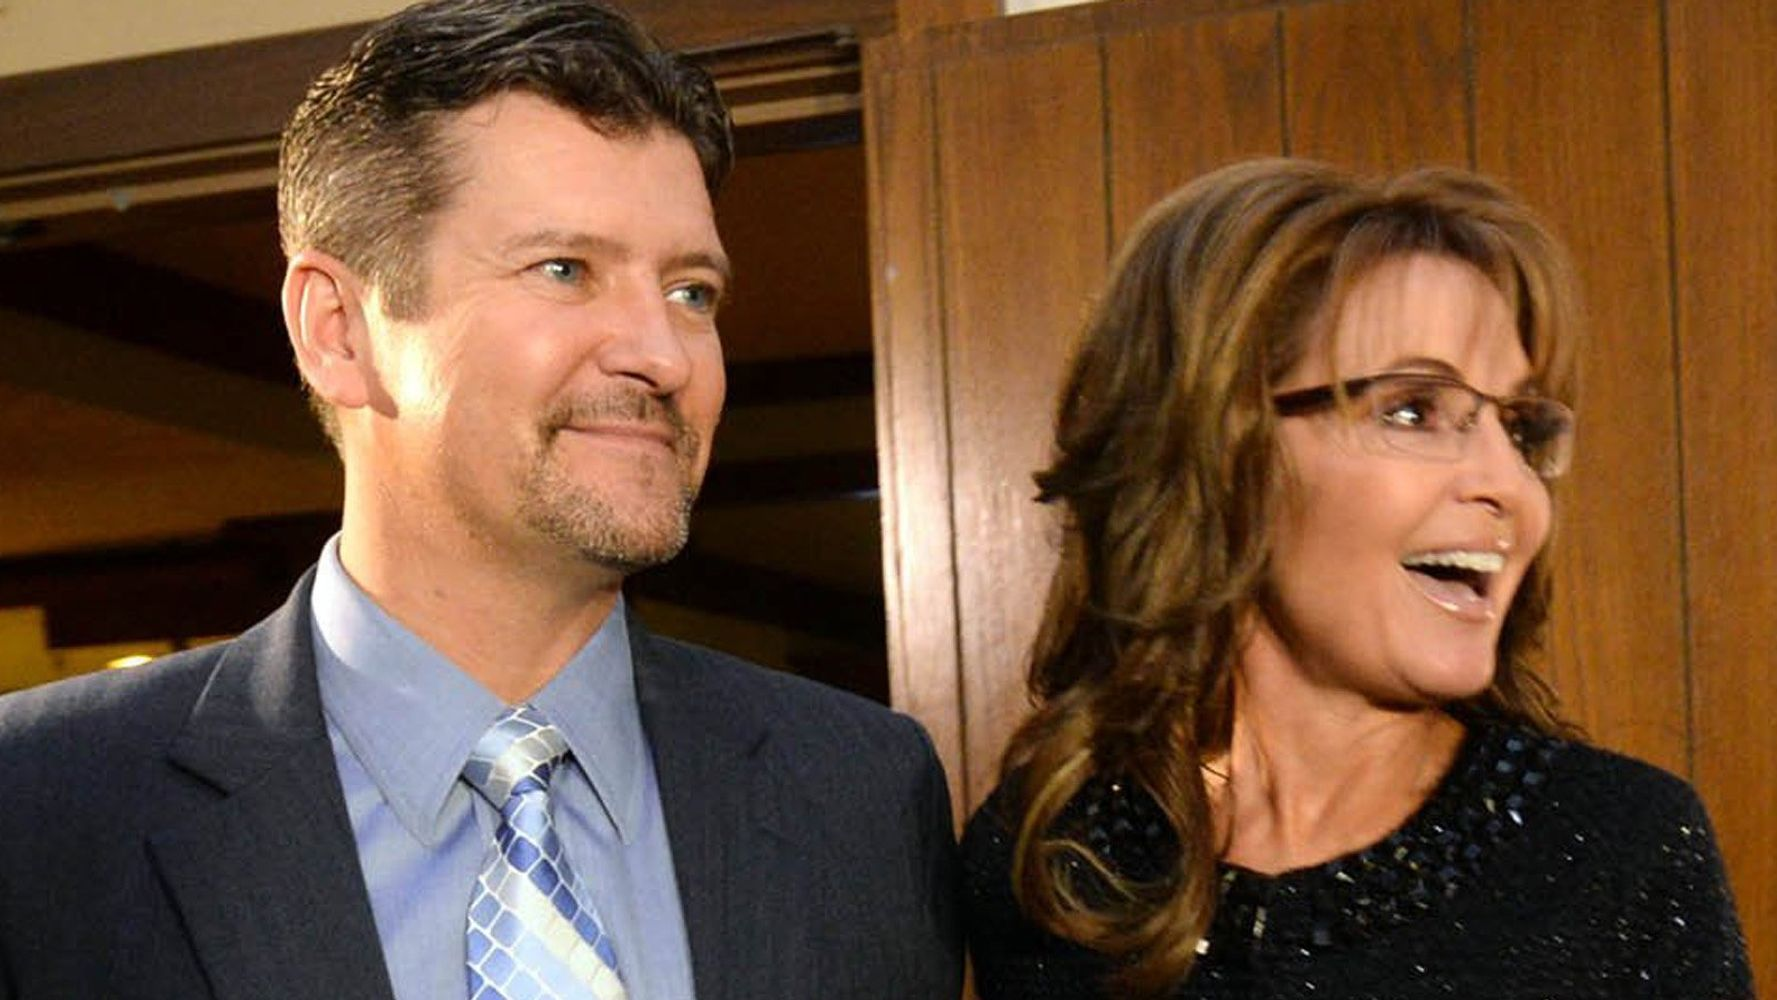 Todd Palin Reportedly Files For Divorce From Sarah Palin